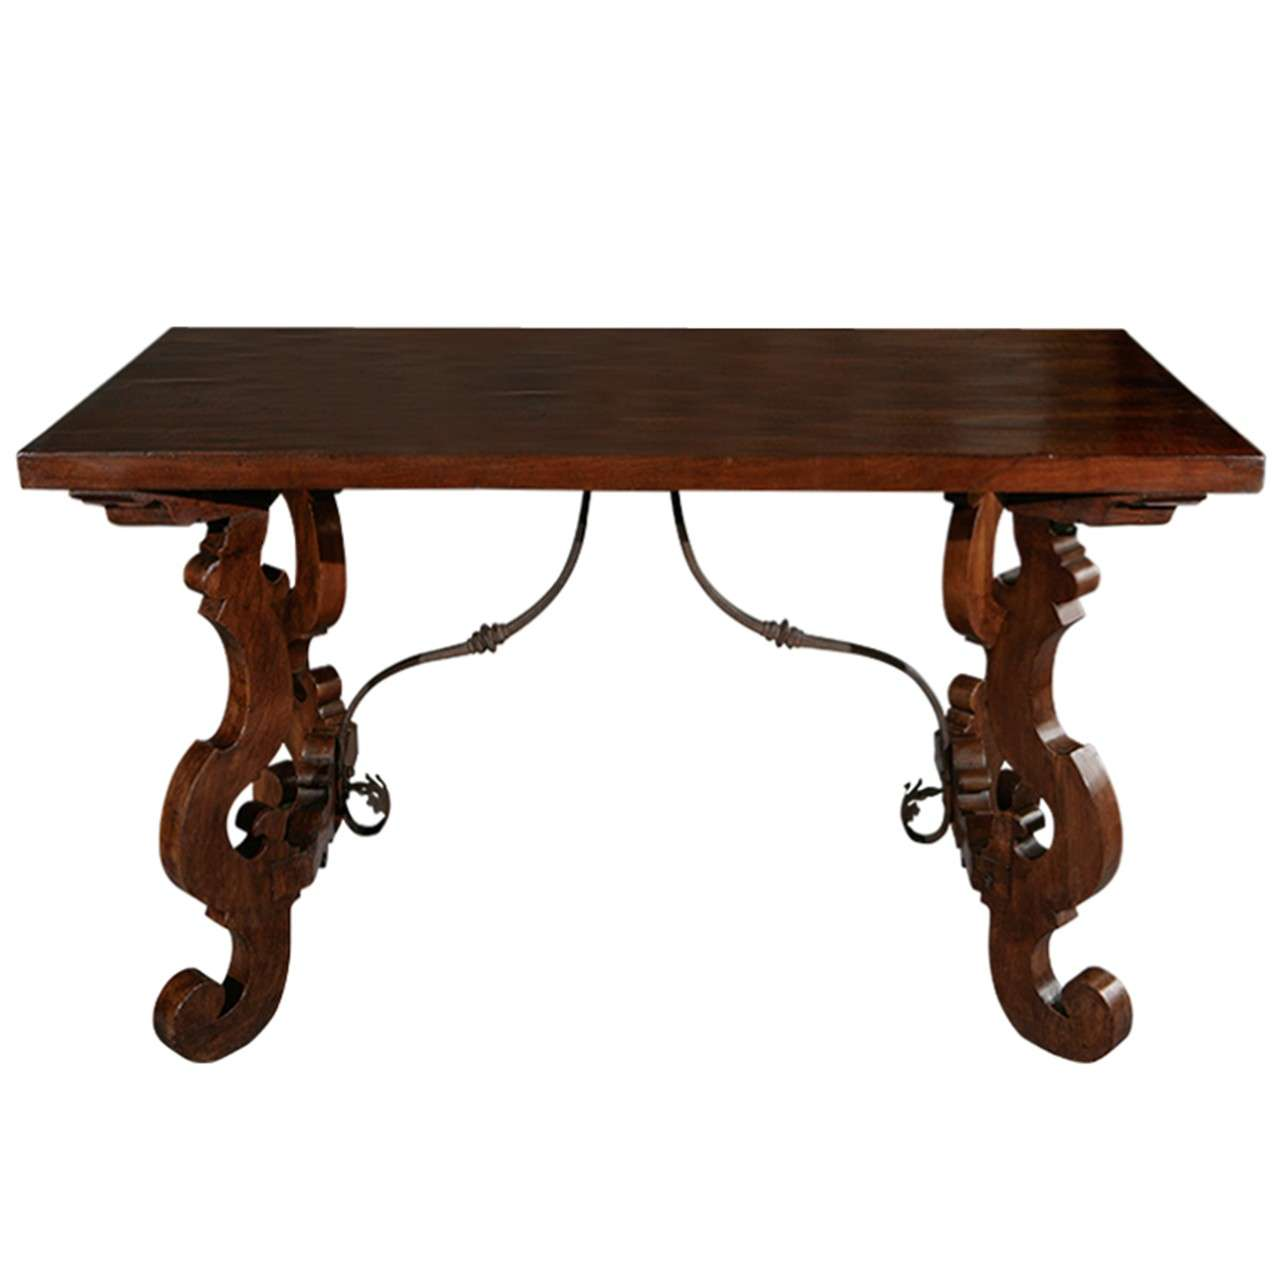 Tuscan Table with Iron Trestle